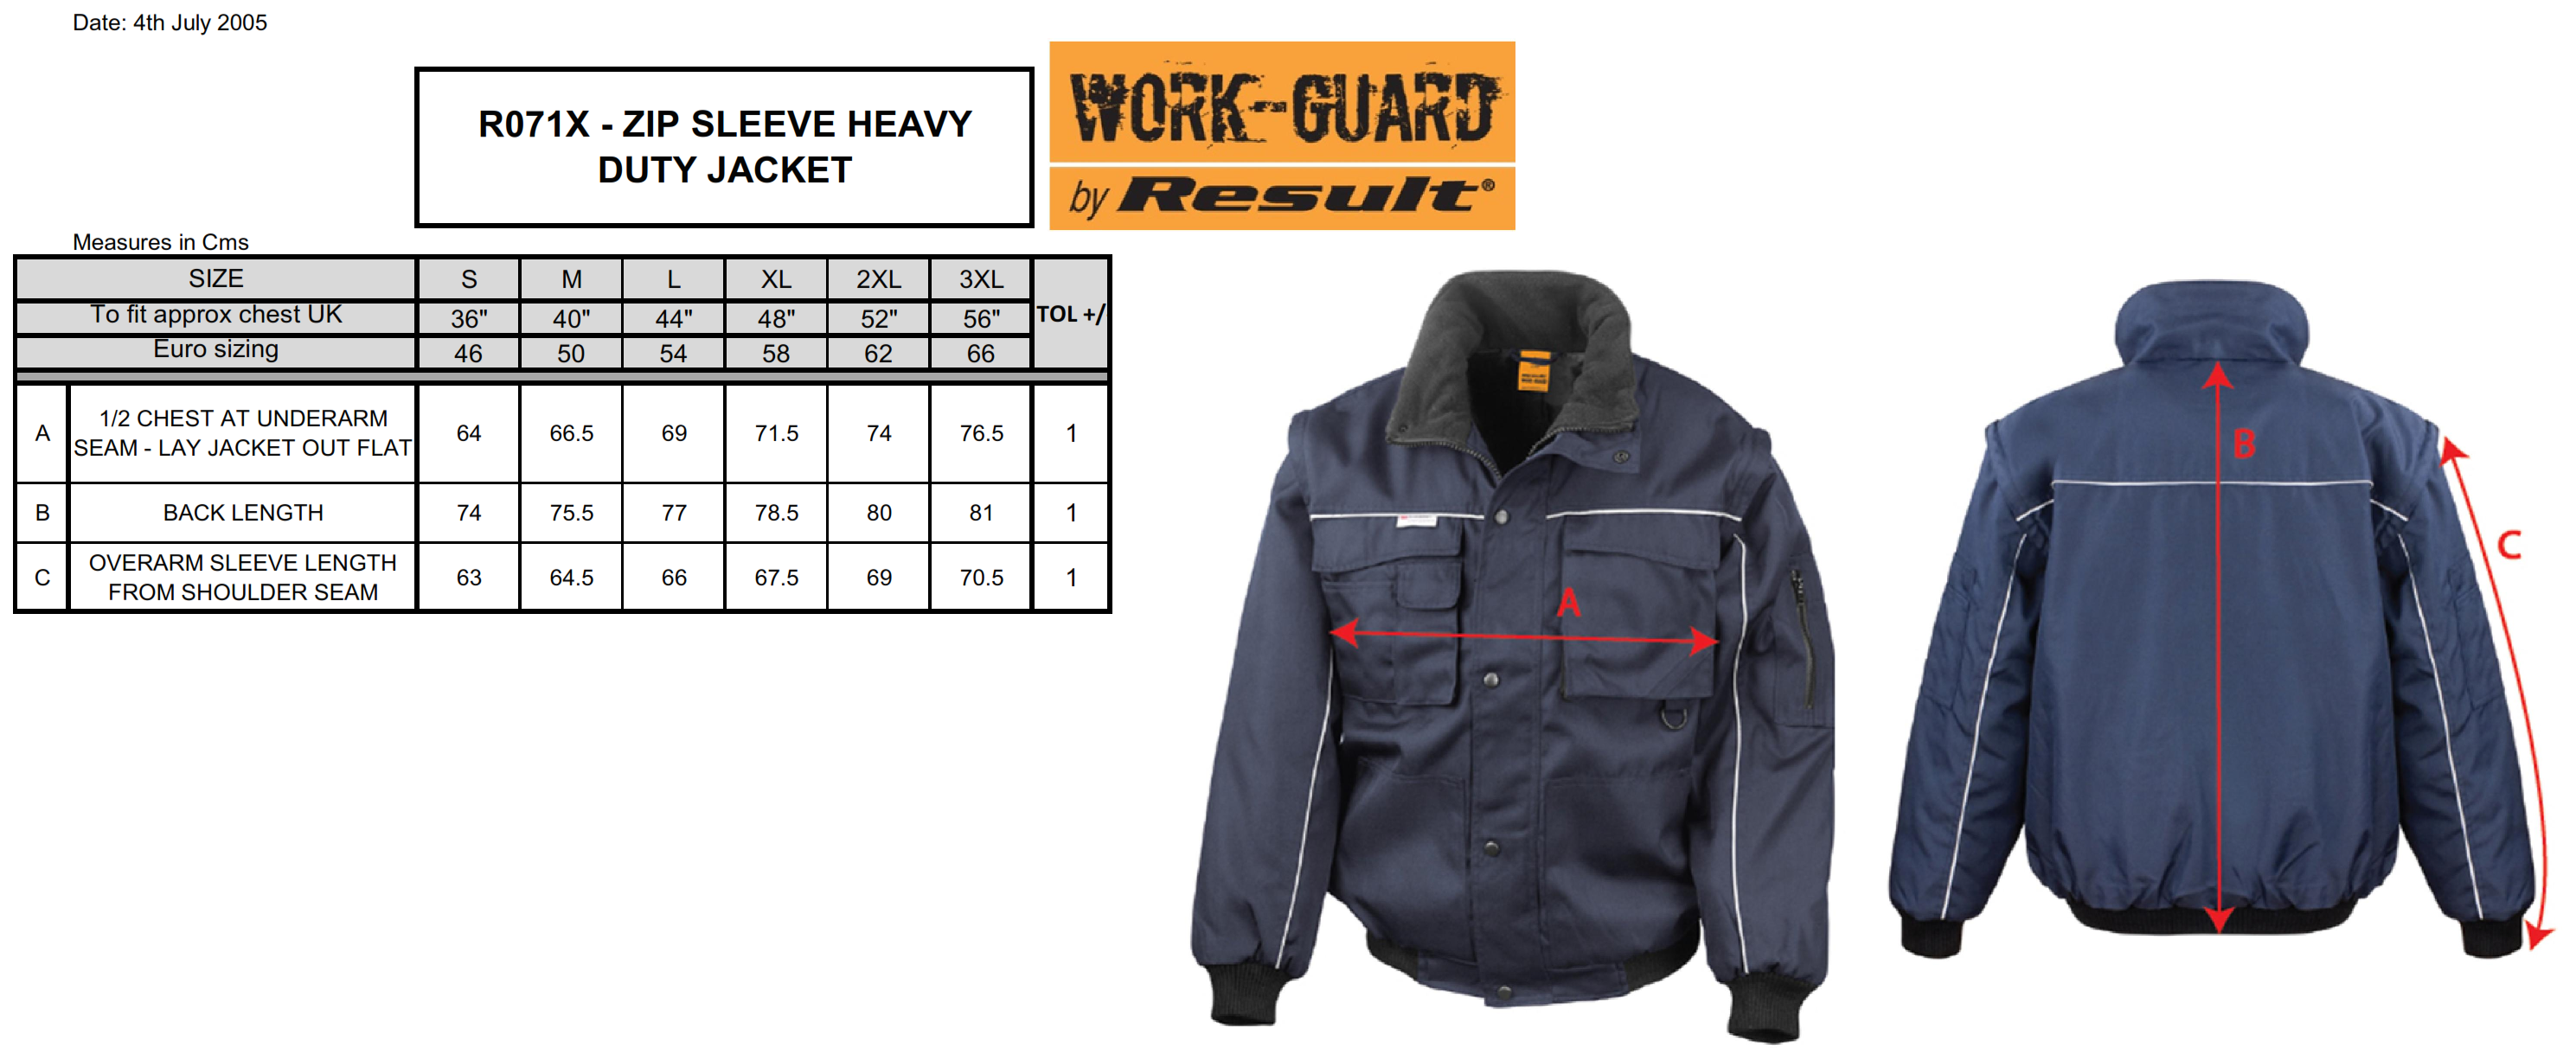 Result: Heavy Duty Jacket R071X